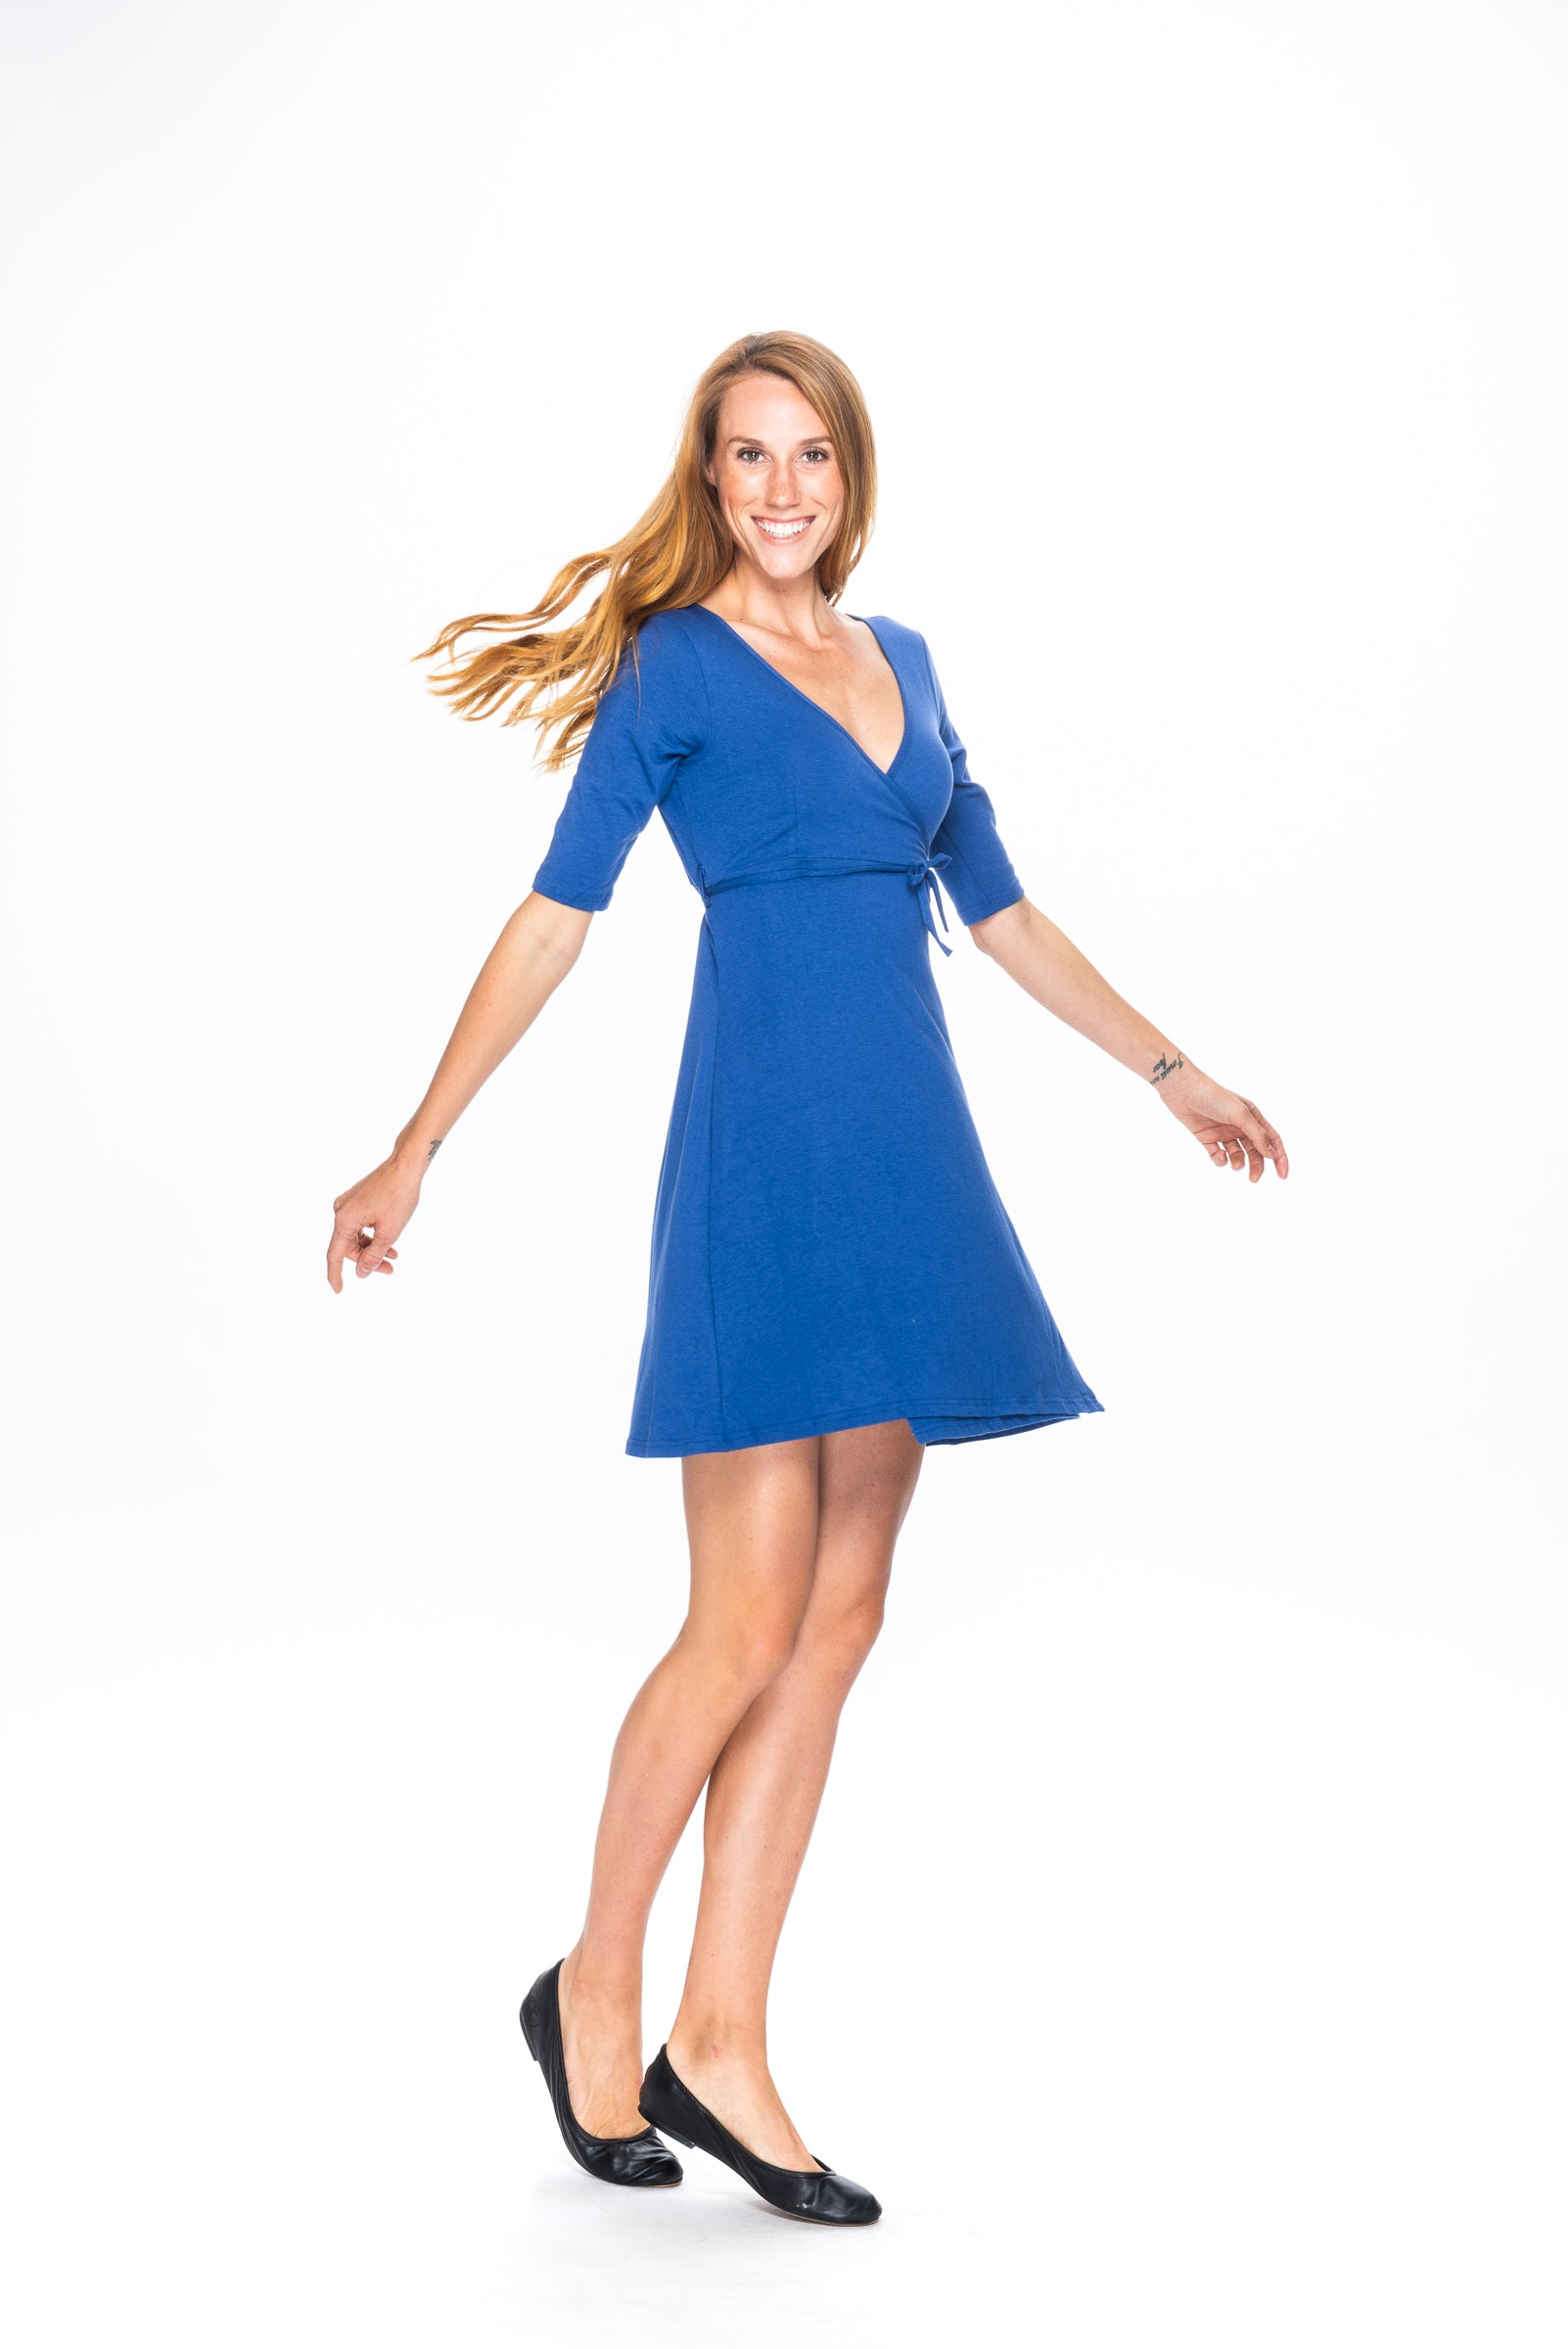 Kail in Bamboo and Organic Cotton Modular Dress and Top by Movement Global